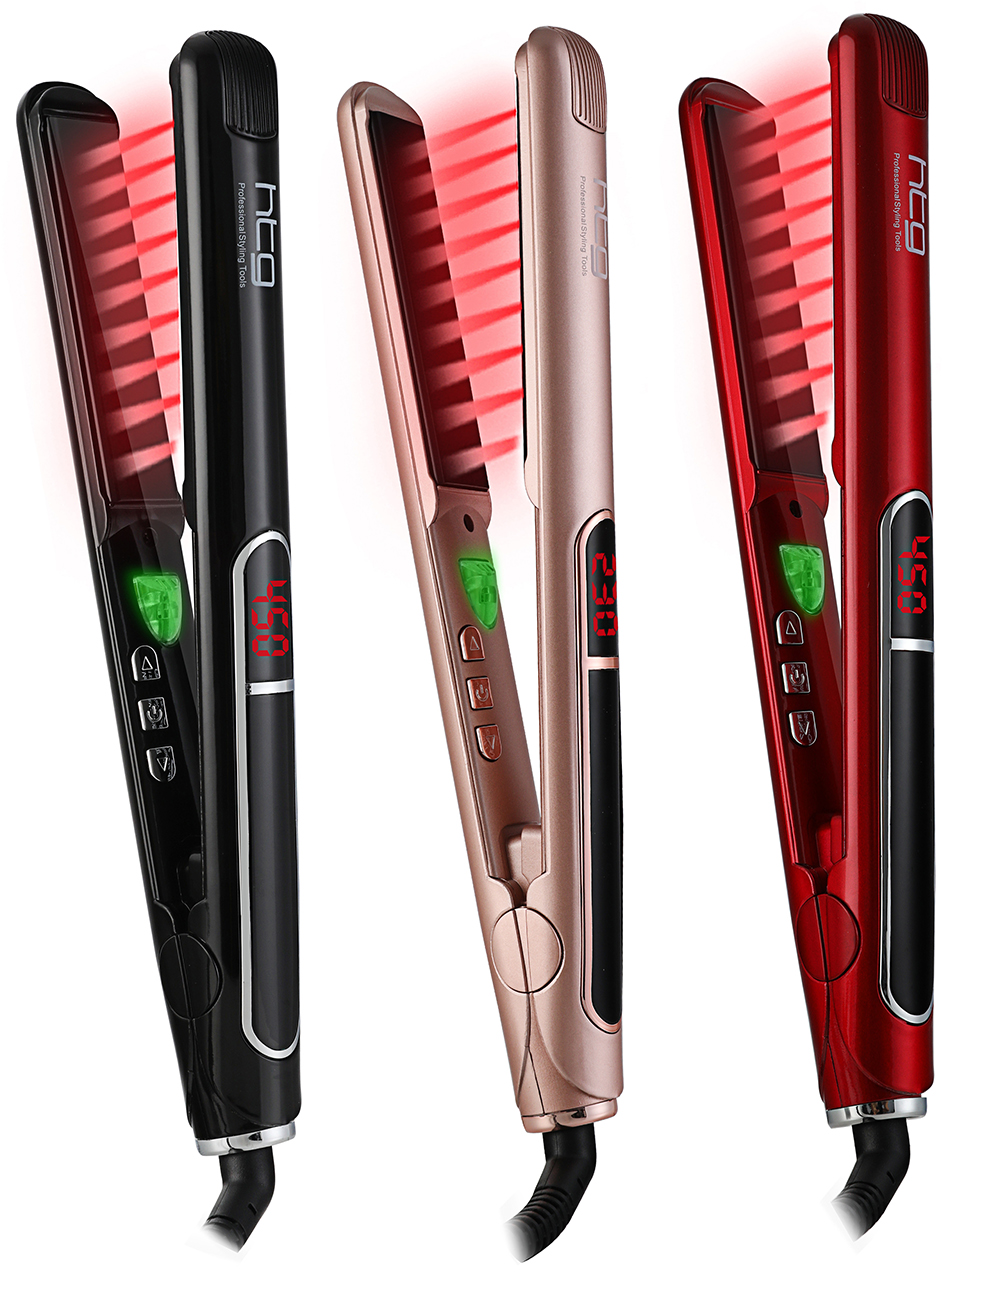 HTG Professional Hair Straightener with lONIC + Infrared